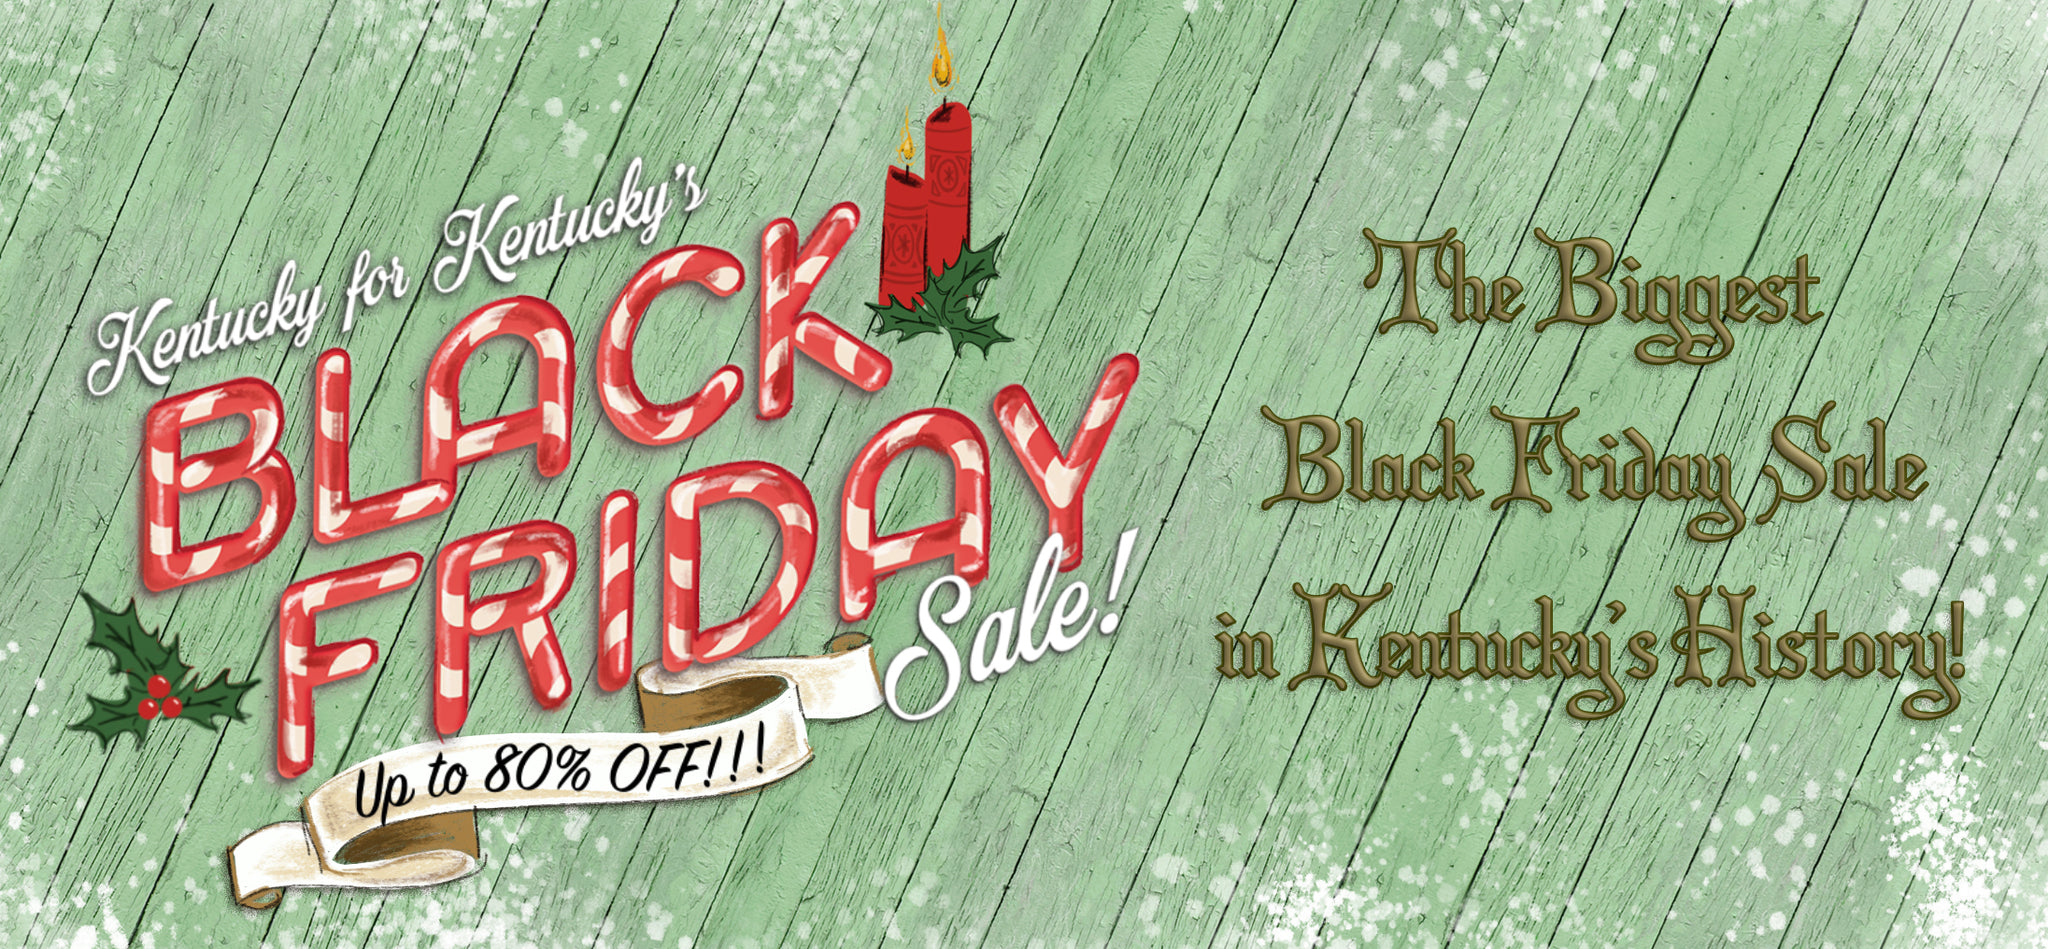 The Biggest Black Friday Sale in Kentucky's History